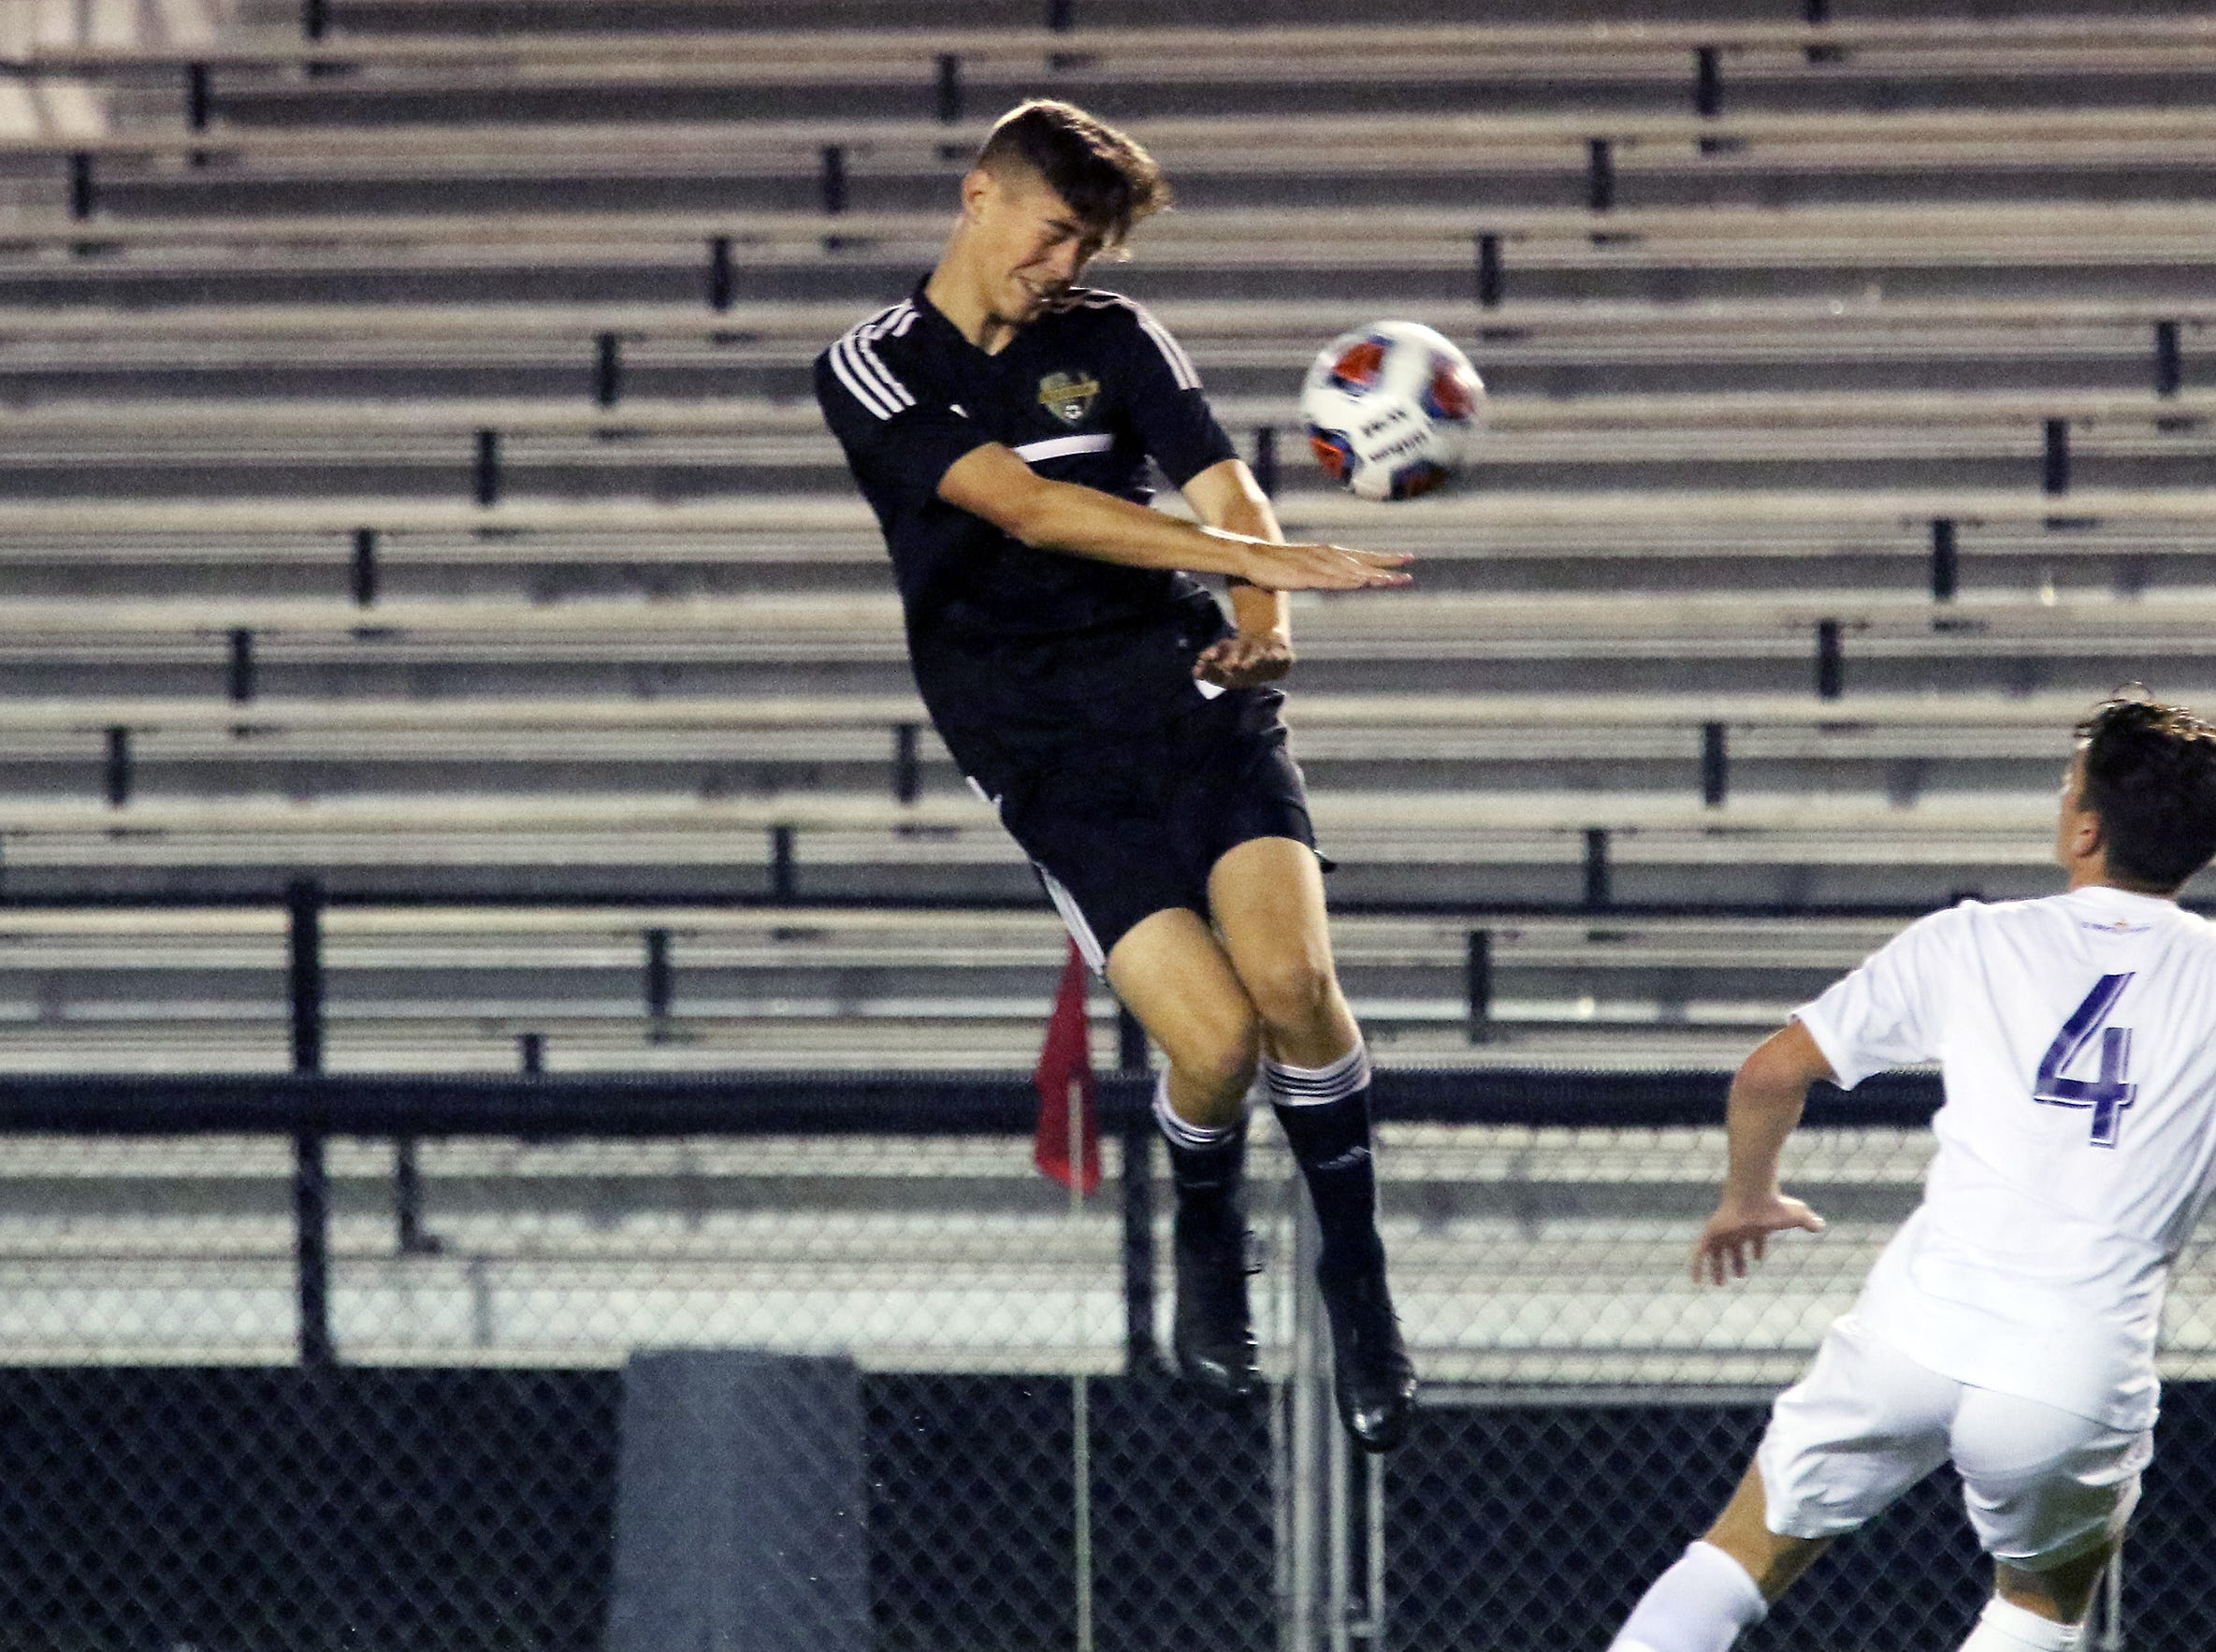 A River View player heads the ball against DeSales.